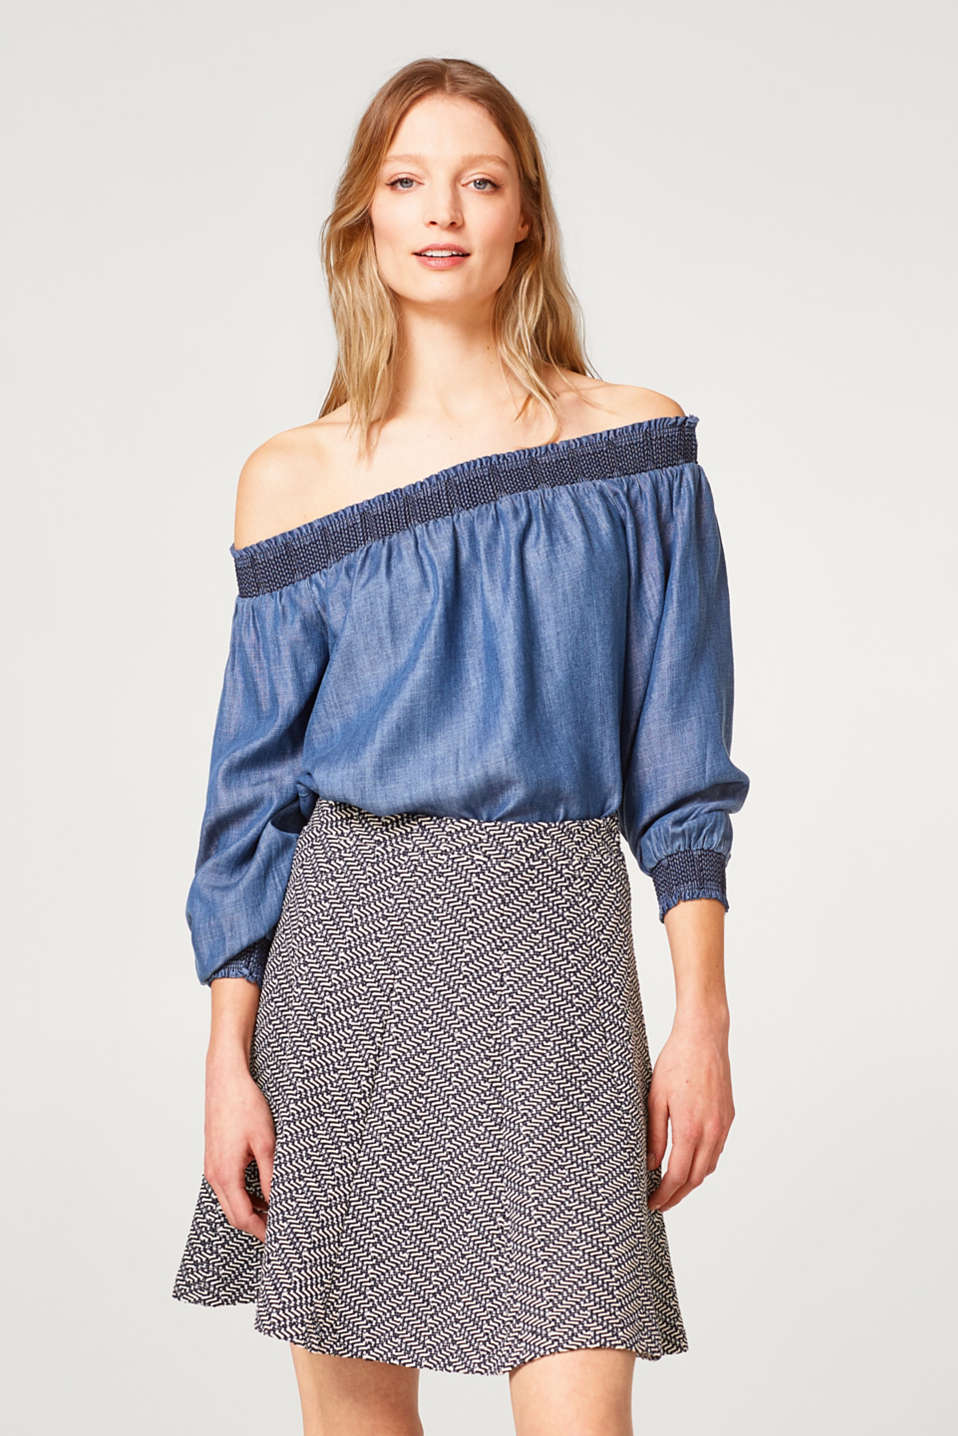 Esprit - Swirling skirt in compact textured jersey